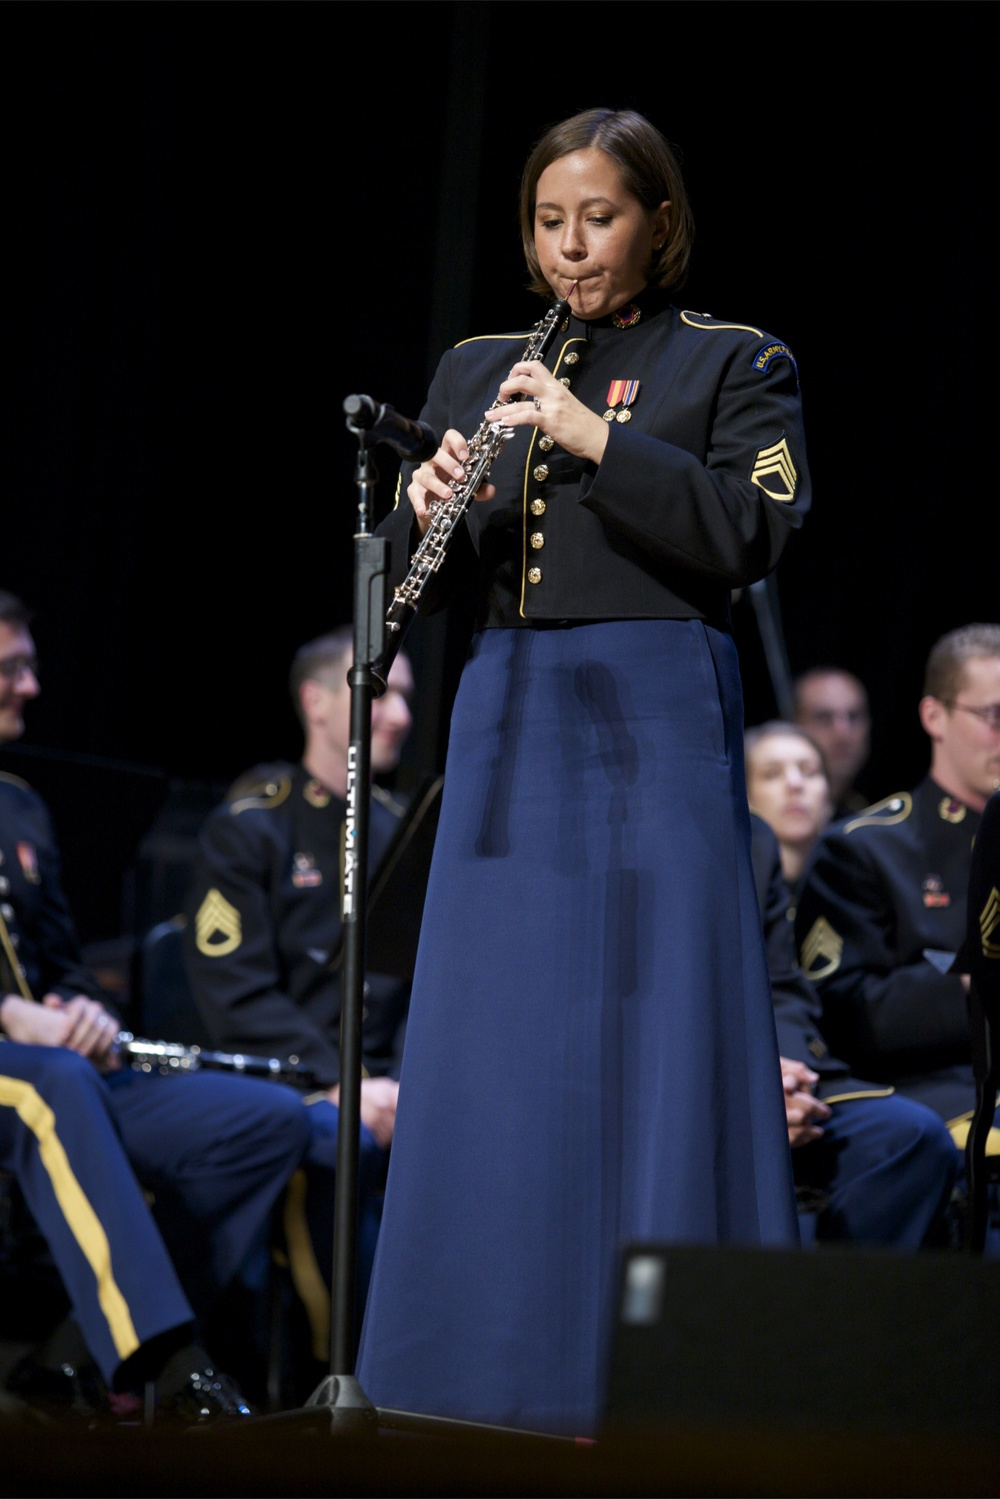 Soloing with the US Army Field Band